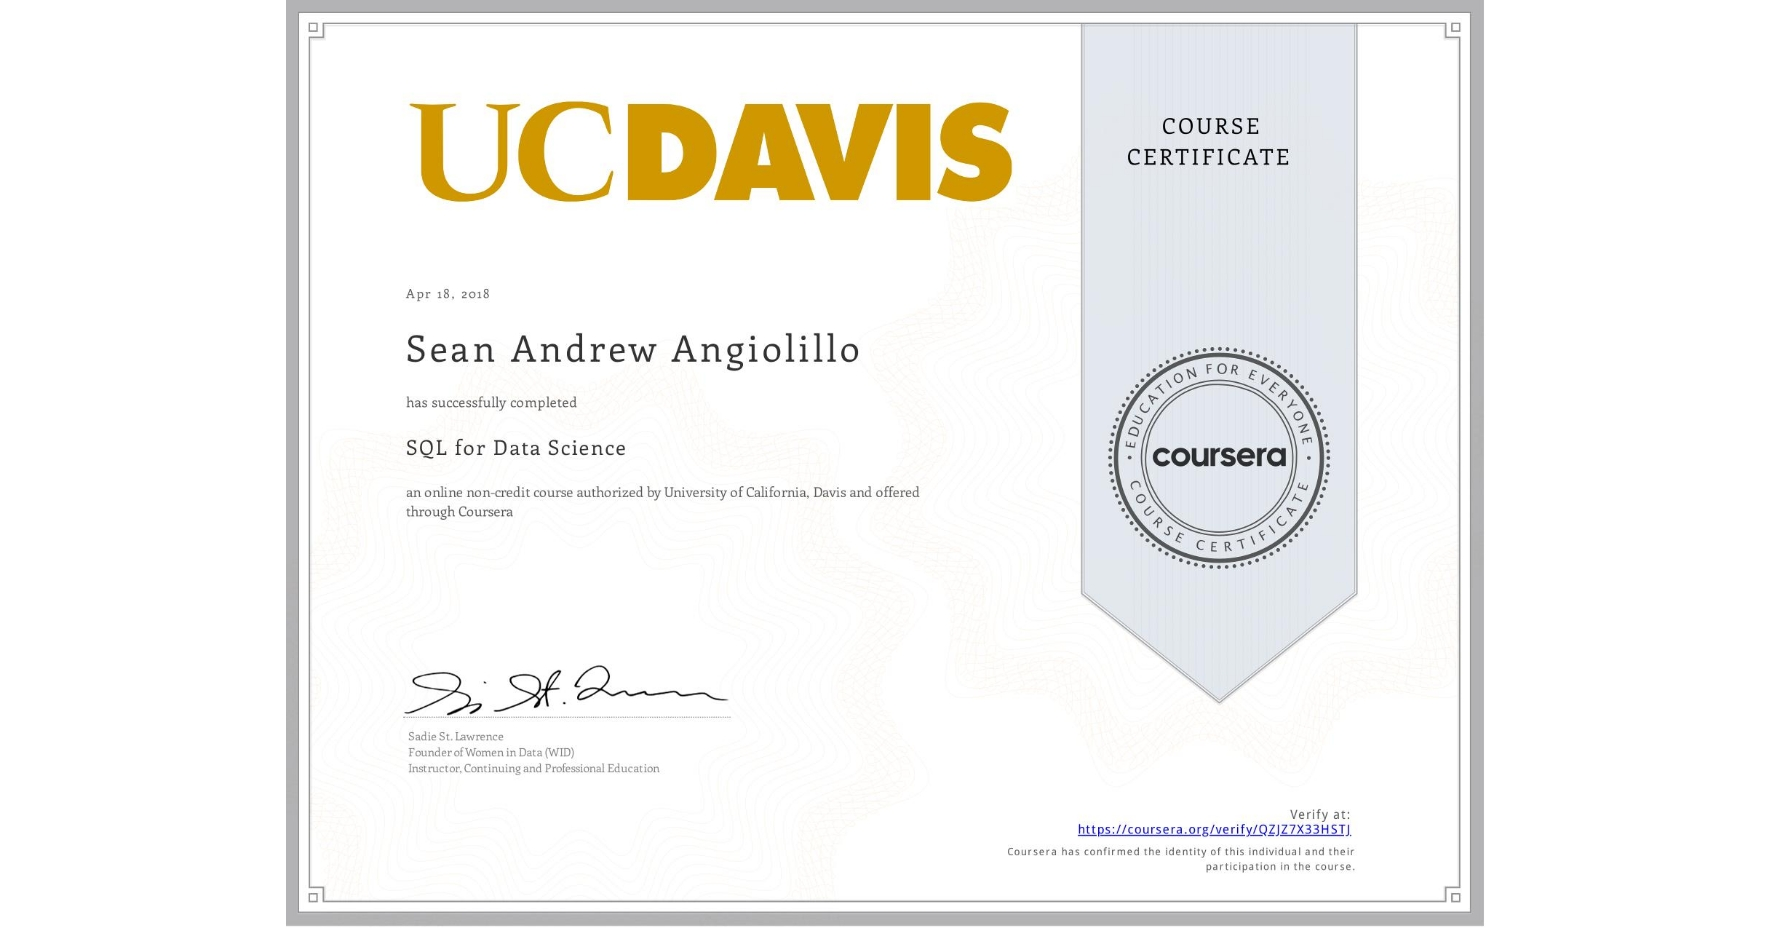 View certificate for Sean Andrew Angiolillo, SQL for Data Science, an online non-credit course authorized by University of California, Davis and offered through Coursera